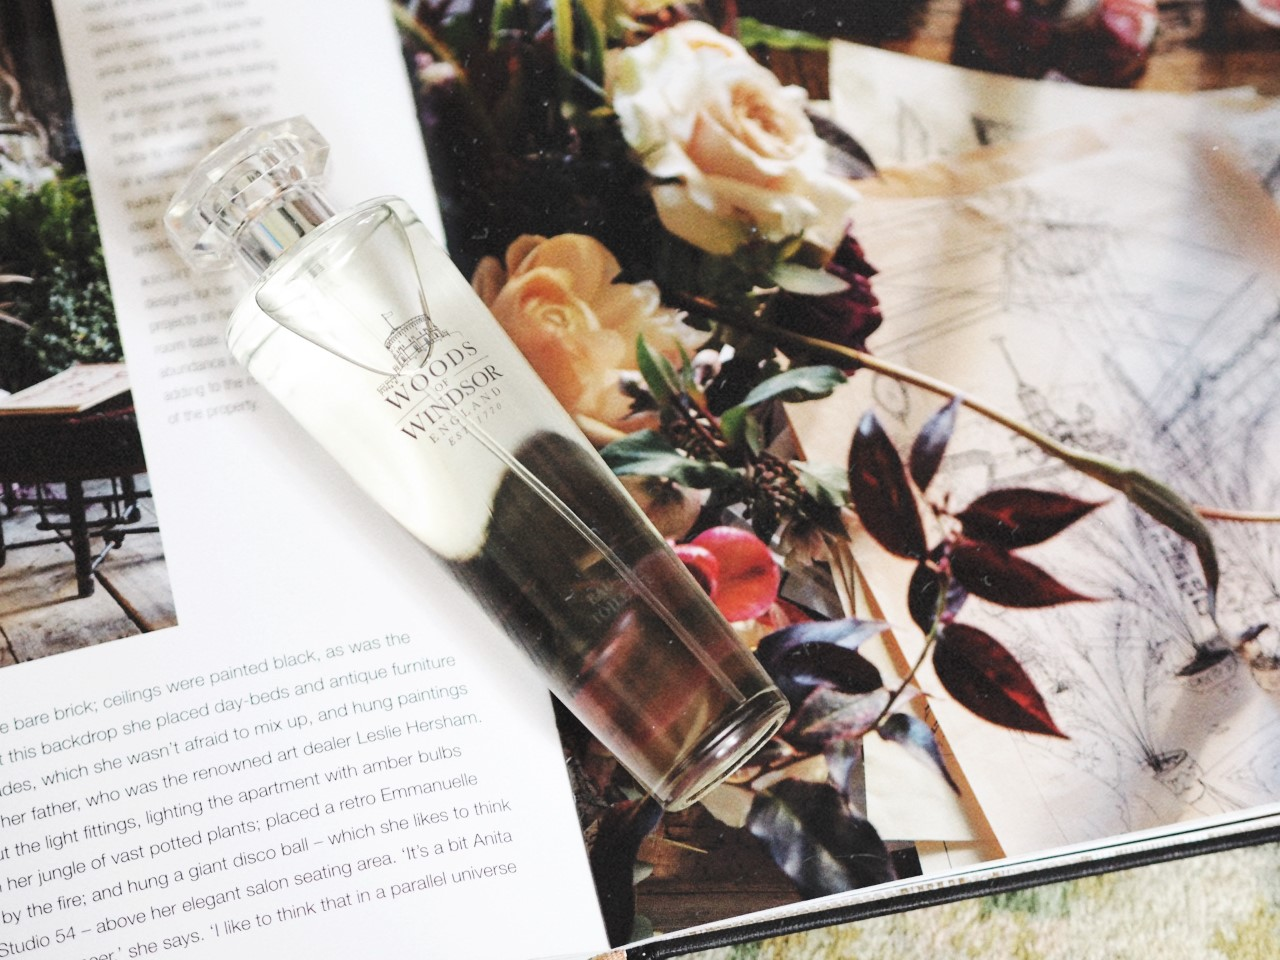 Woods Of Windsor 'White Jasmine' Perfume Review! The Budget Fragrance You Need To Know About!